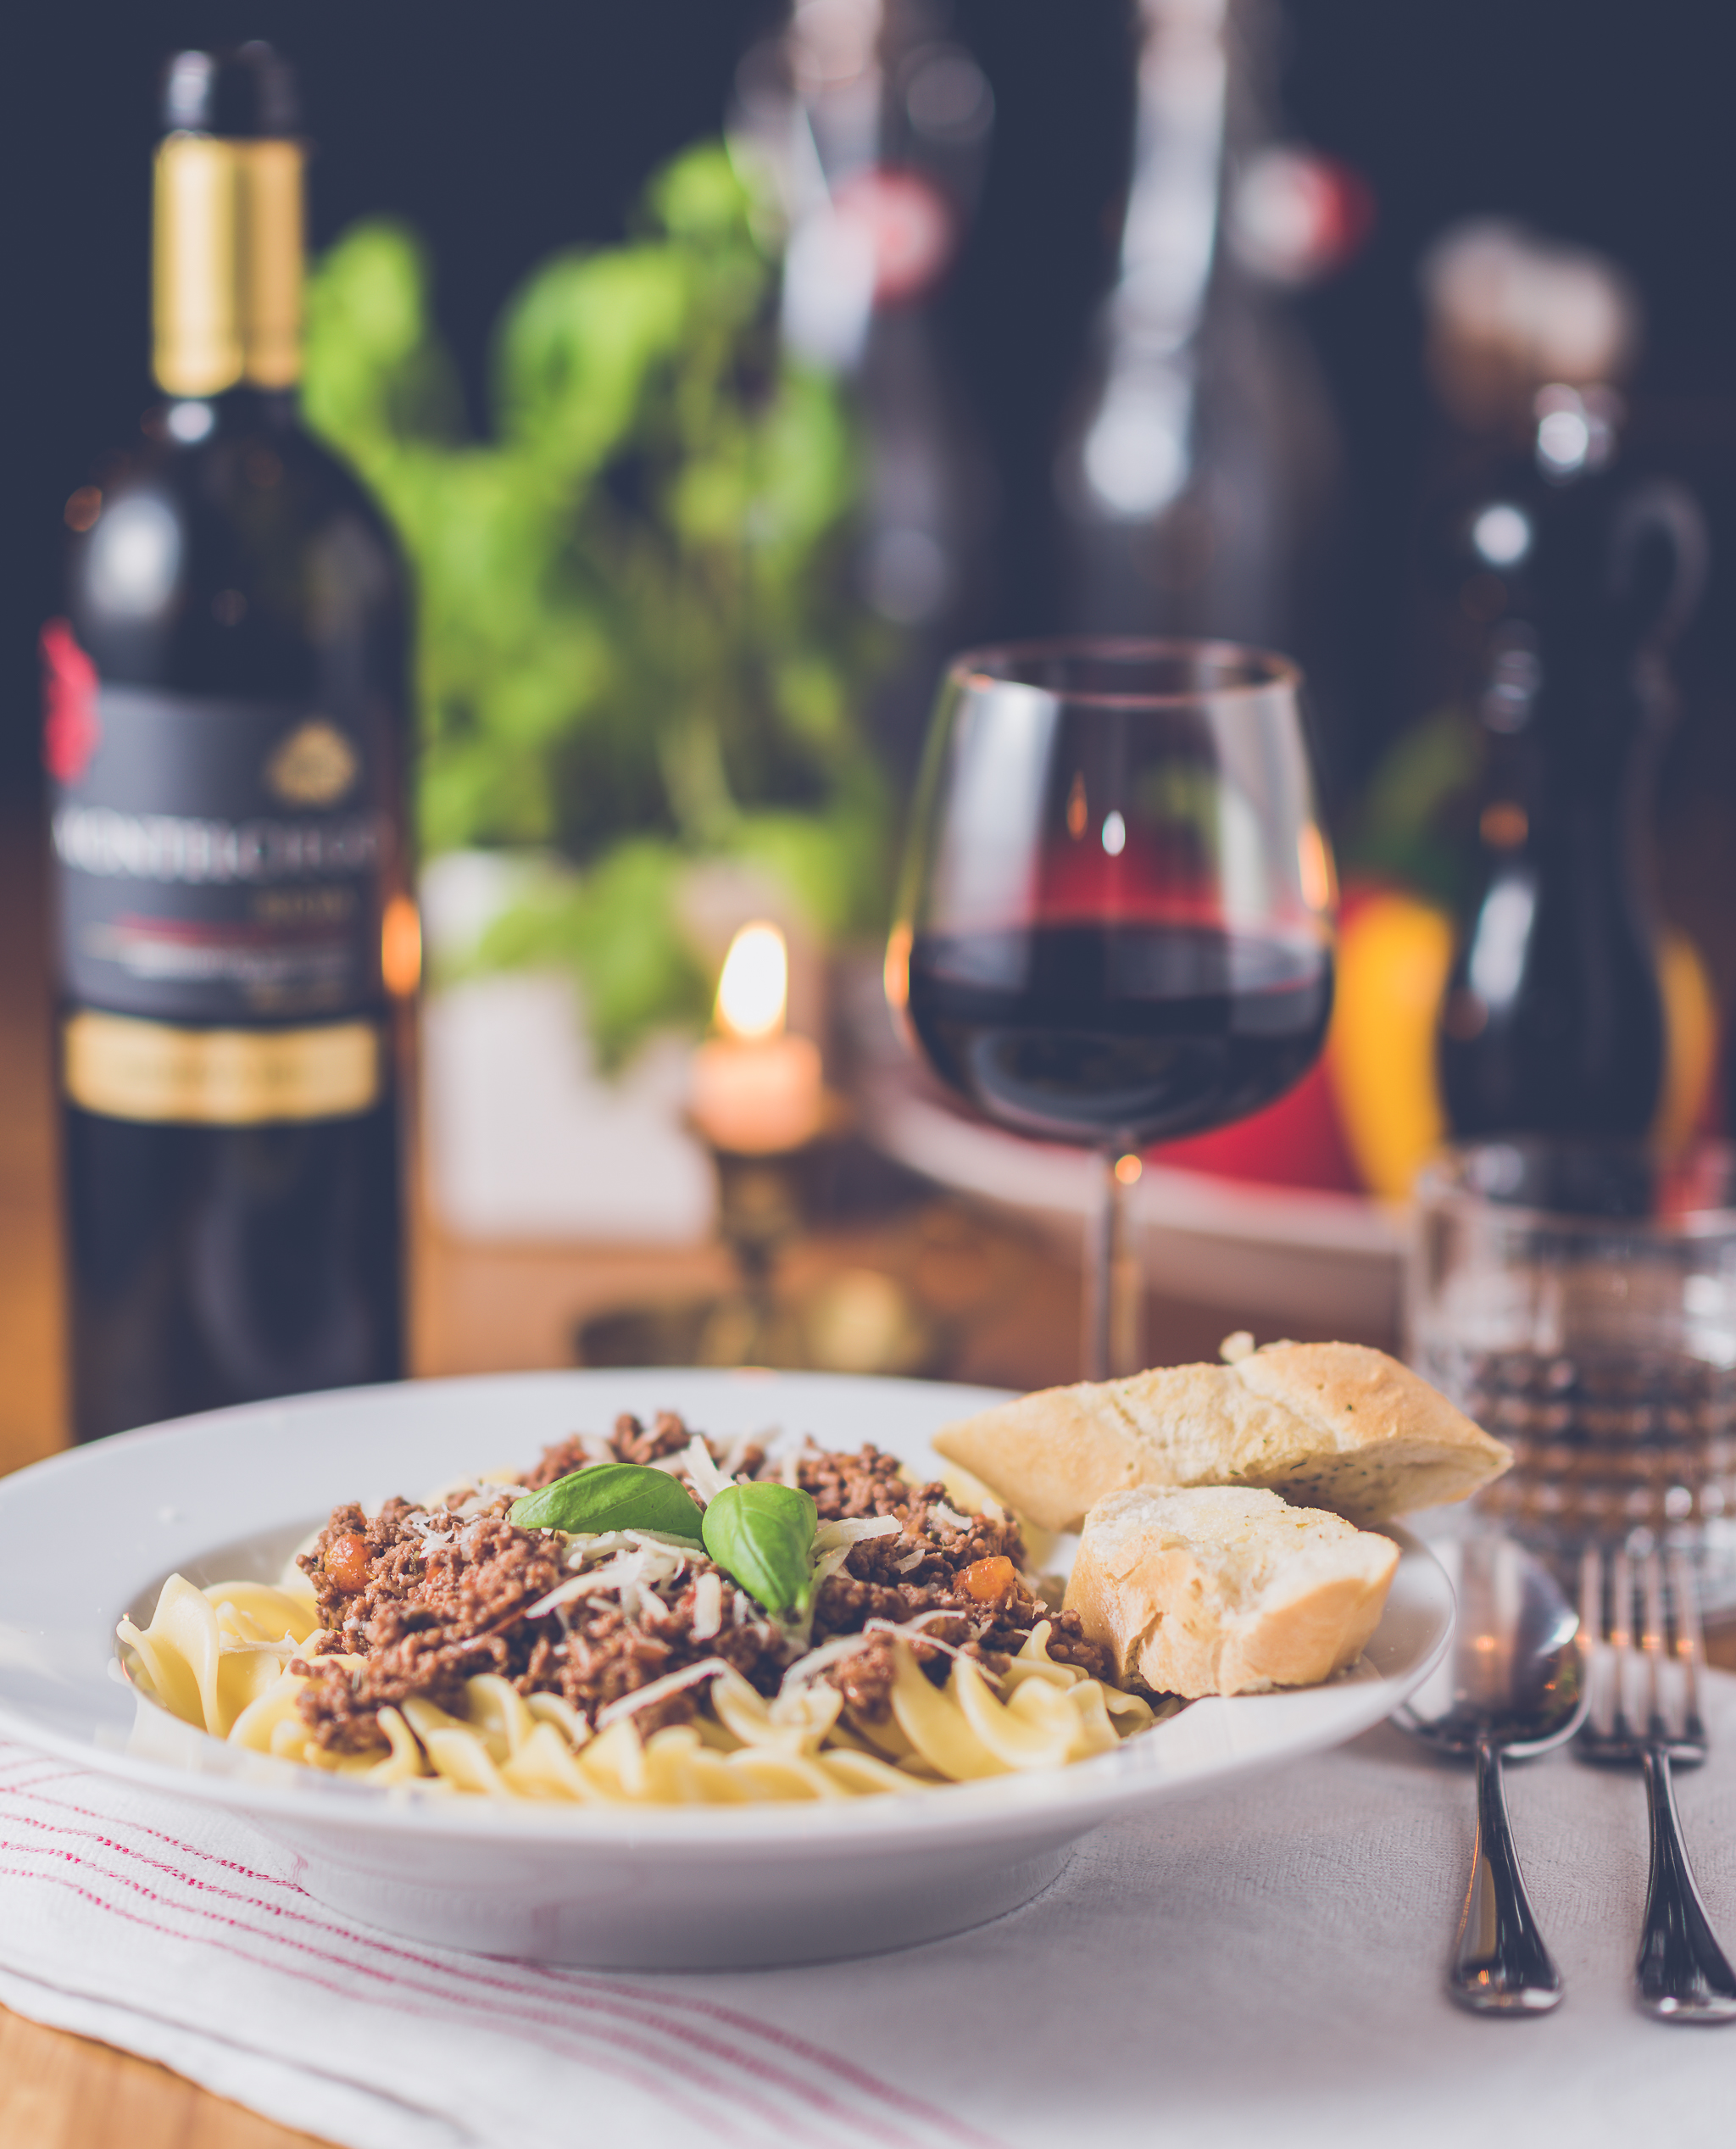 romantic meal including a pasta dish and glass of wine